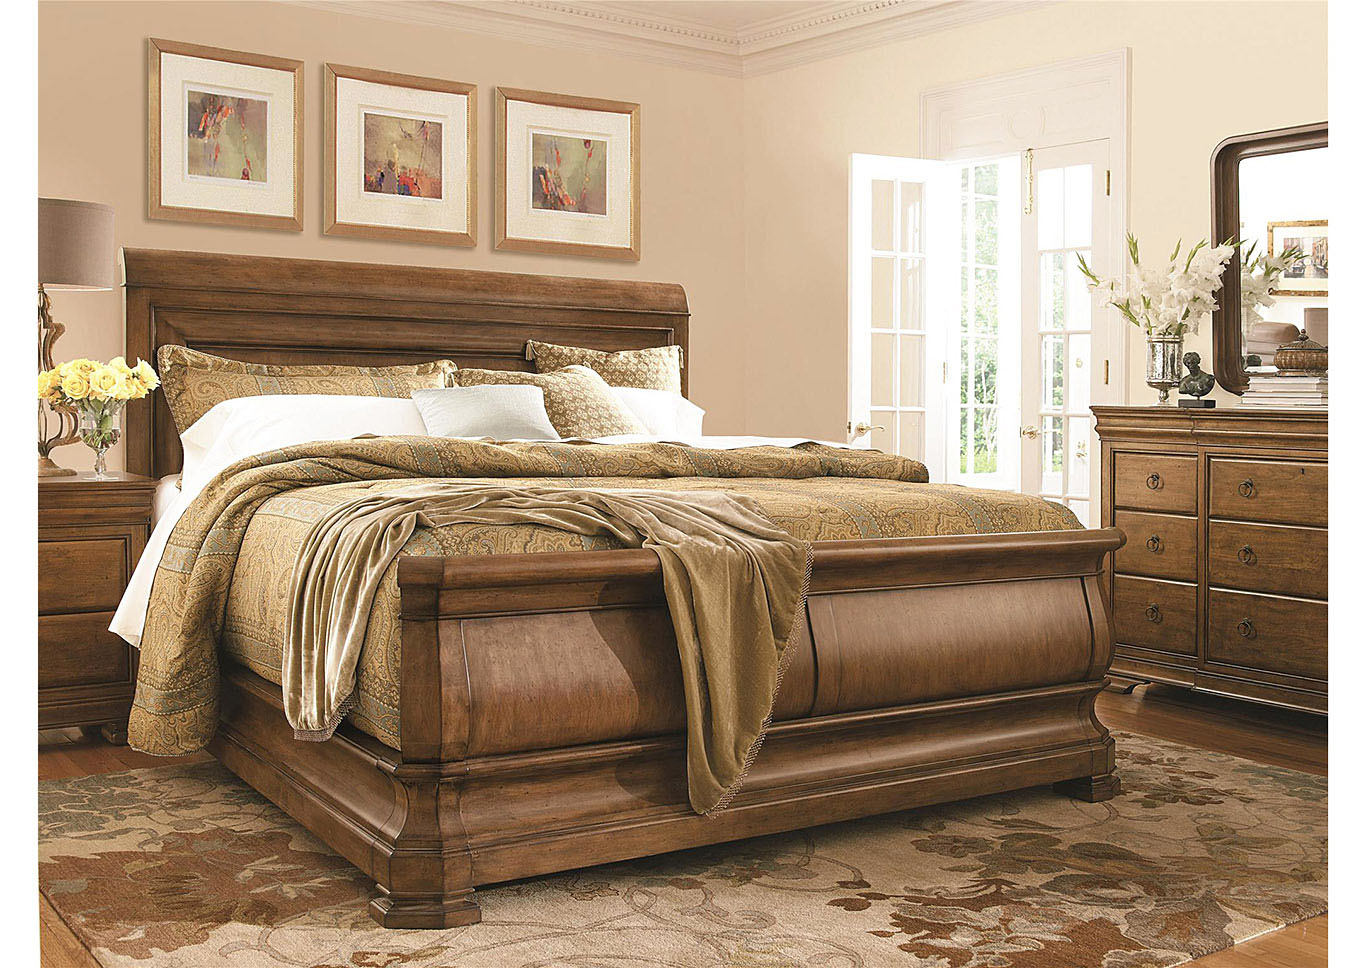 Crawford Queen Bed,Universal